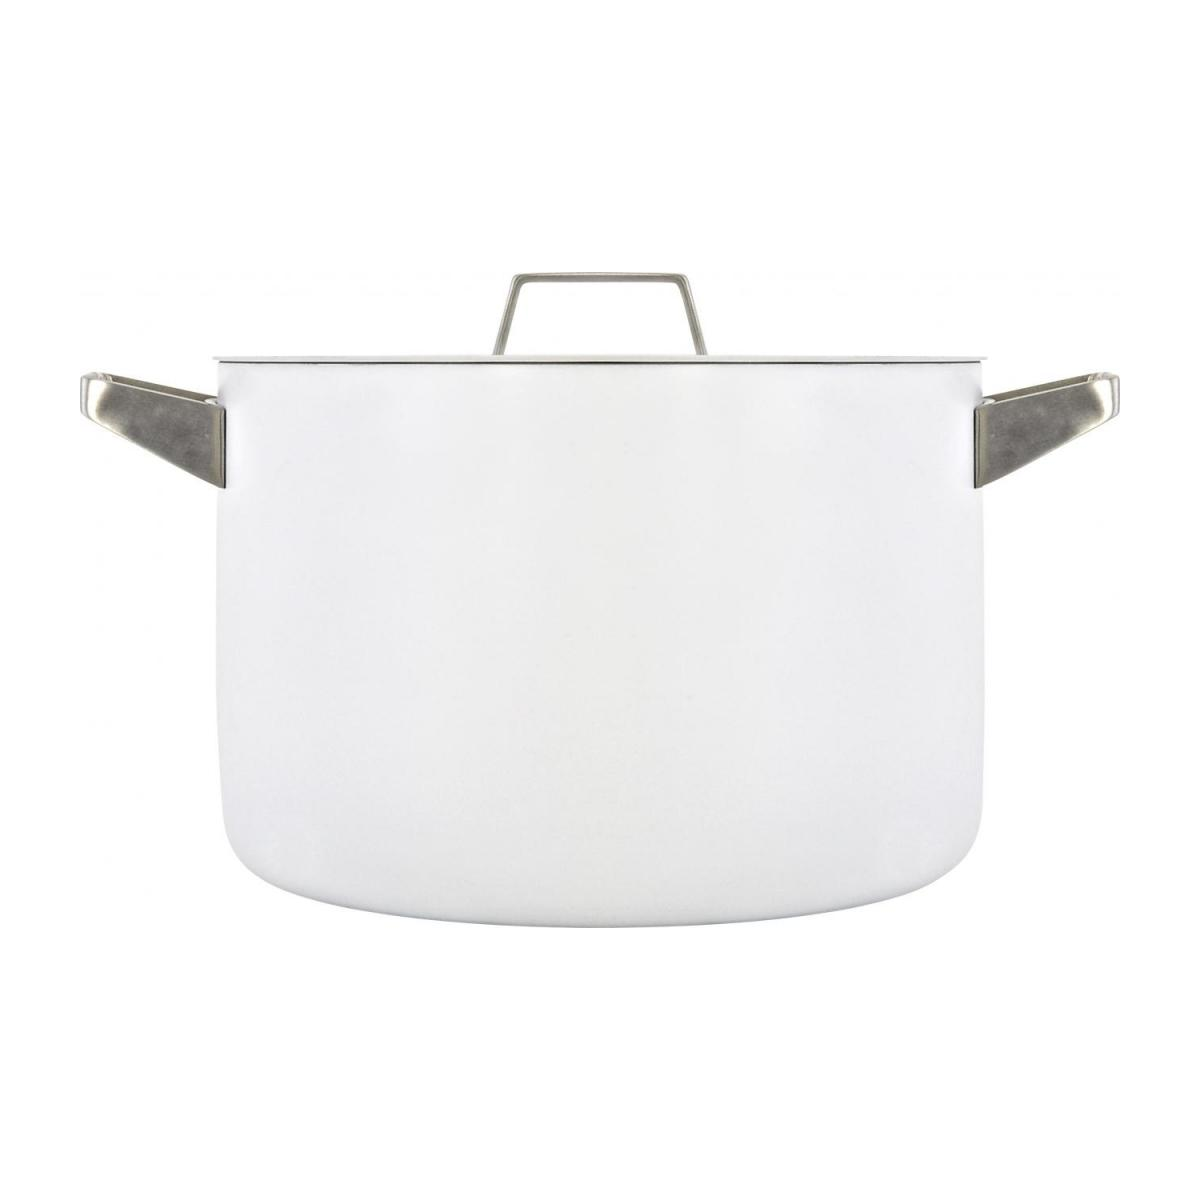 White aluminium pot and lid 26 cm with inner coating in ceramic n°4